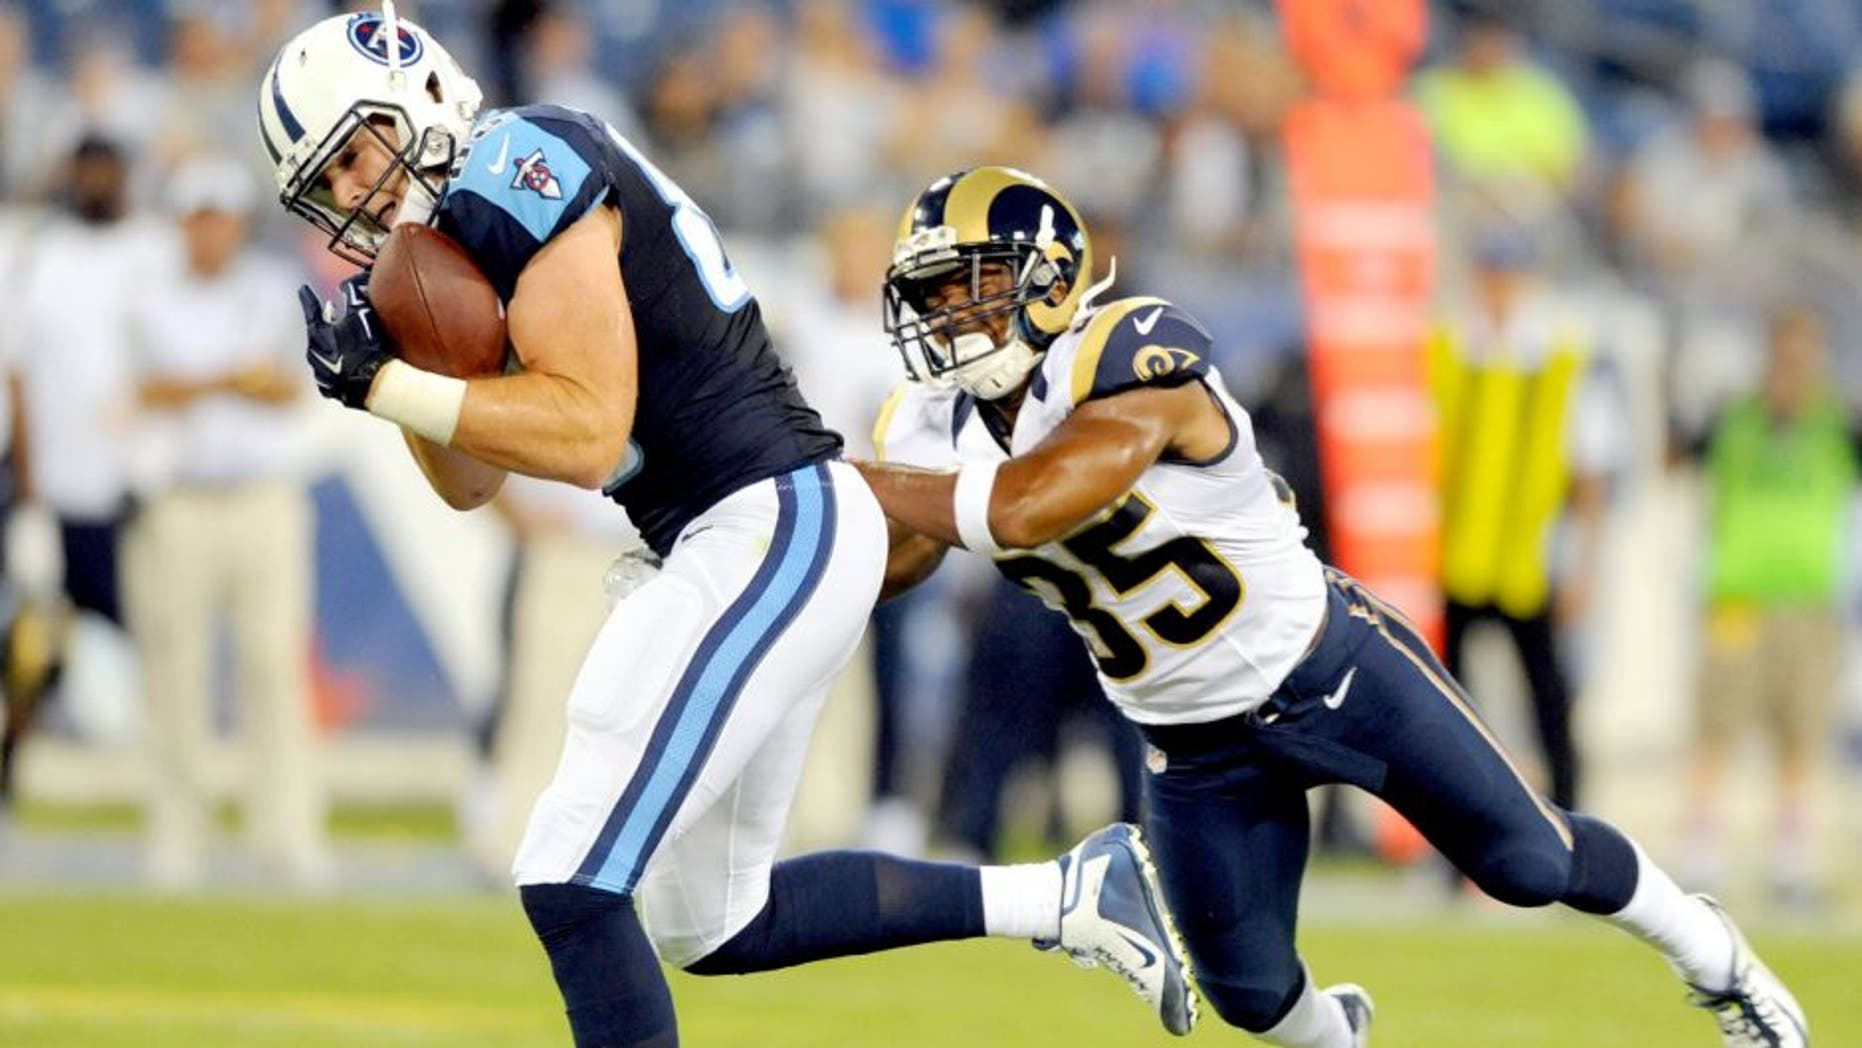 Aug 23, 2015; Nashville, TN, USA; Tennessee Titans tight end Chase Coffman (85) catches a touchdown pass while being defended by St. Louis Rams safety Jay Hughes (35) during the second half at Nissan Stadium. The Titans won 27-14. Mandatory Credit: Christopher Hanewinckel-USA TODAY Sports